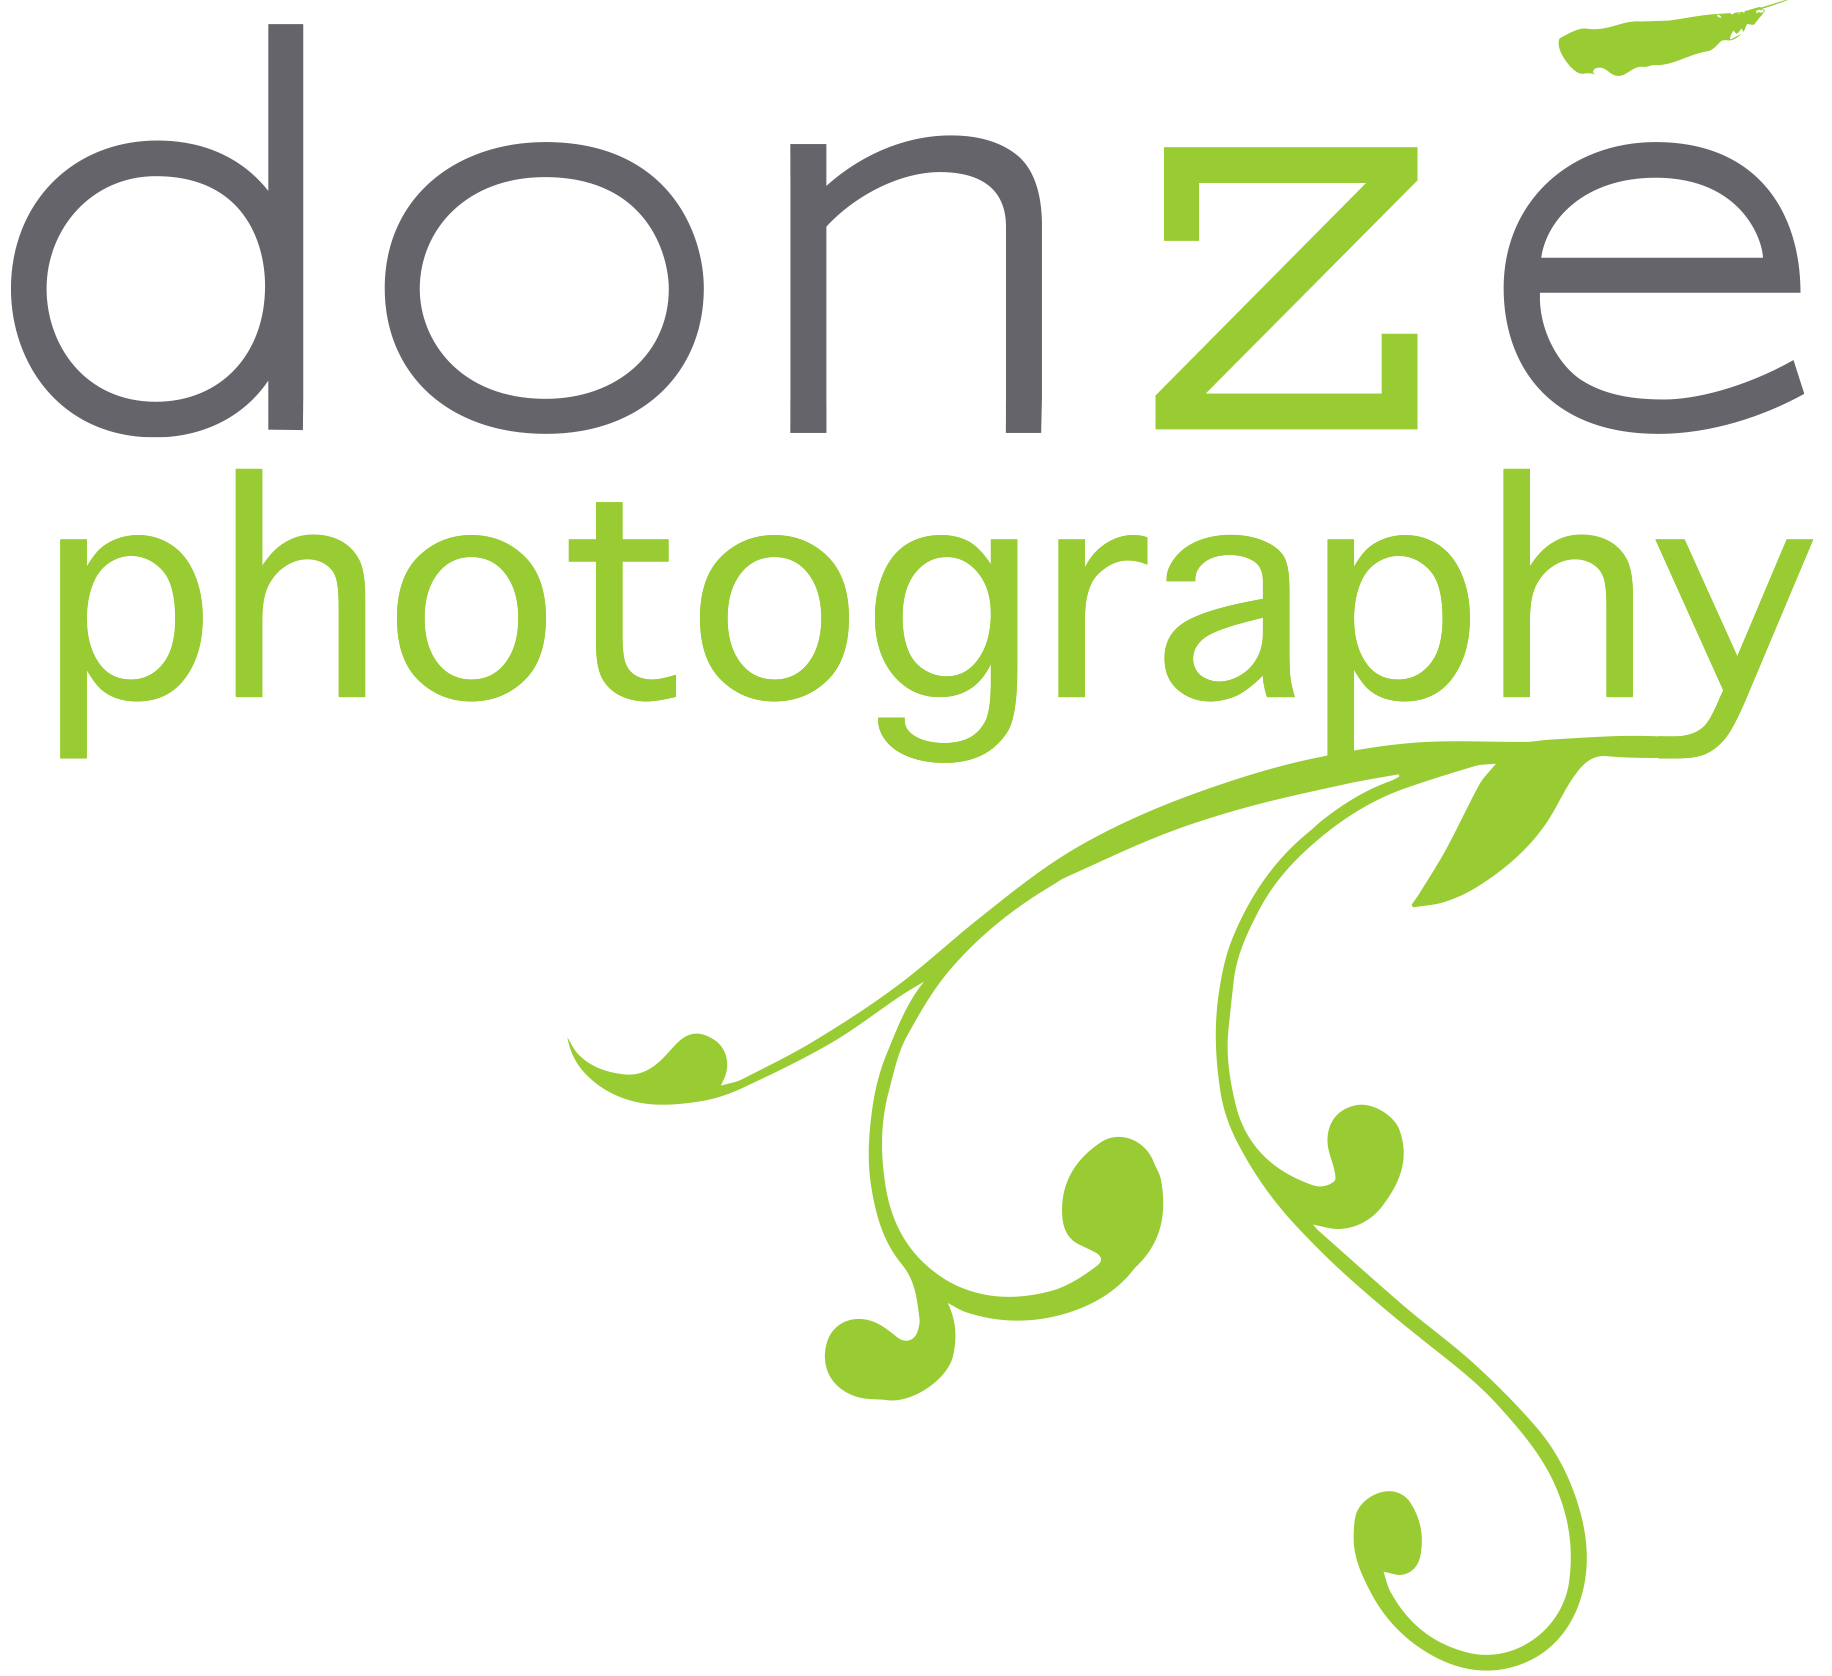 Donze curly branch logo